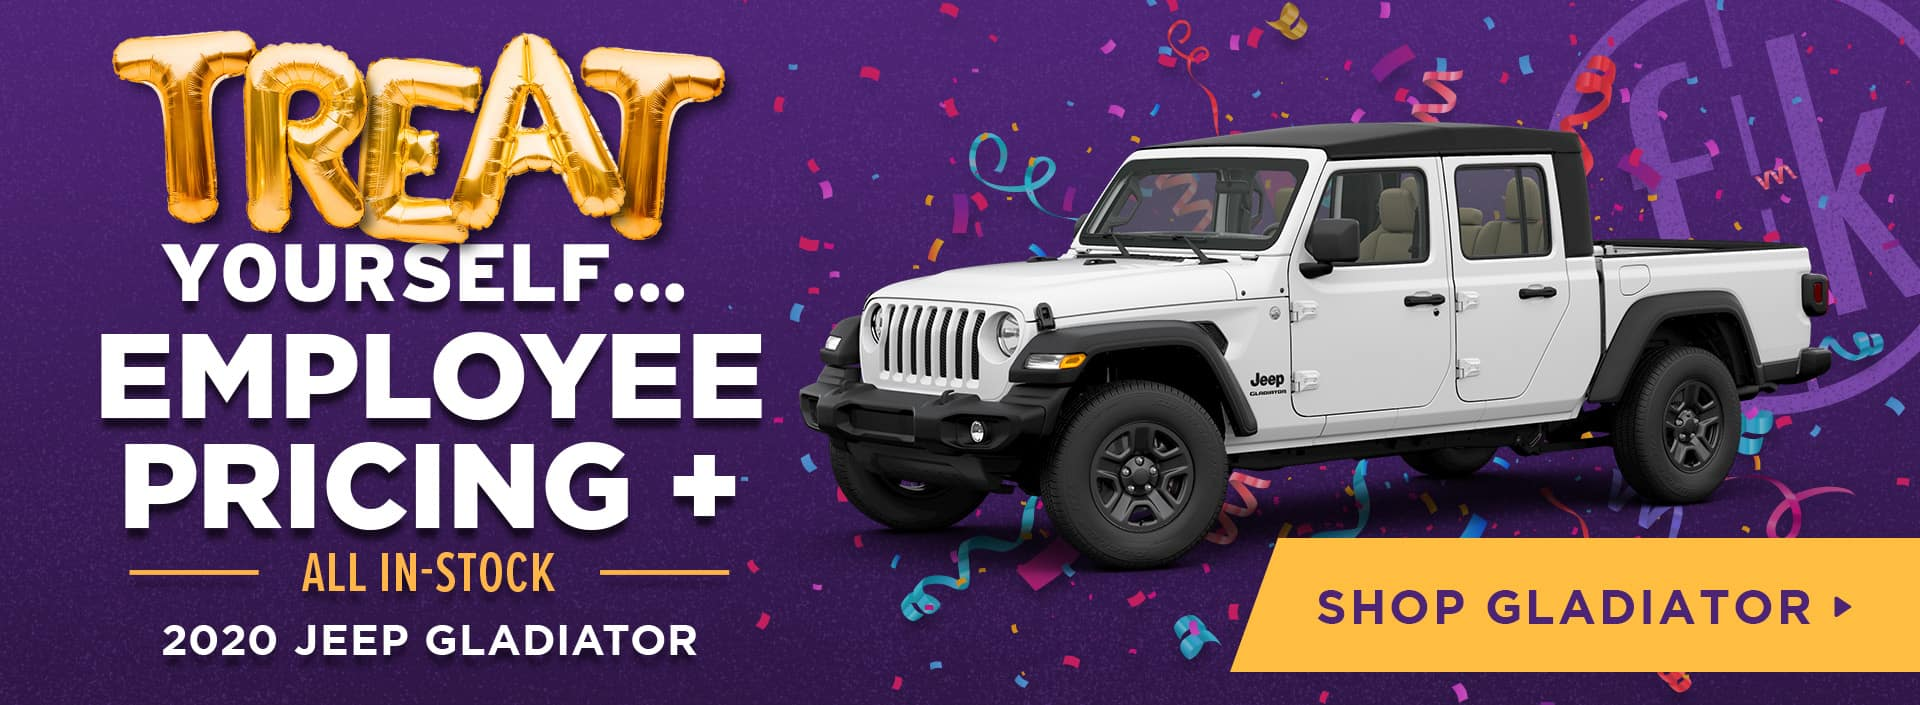 Employee Pricing+ All In-Stock 2020 Jeep Gladiators